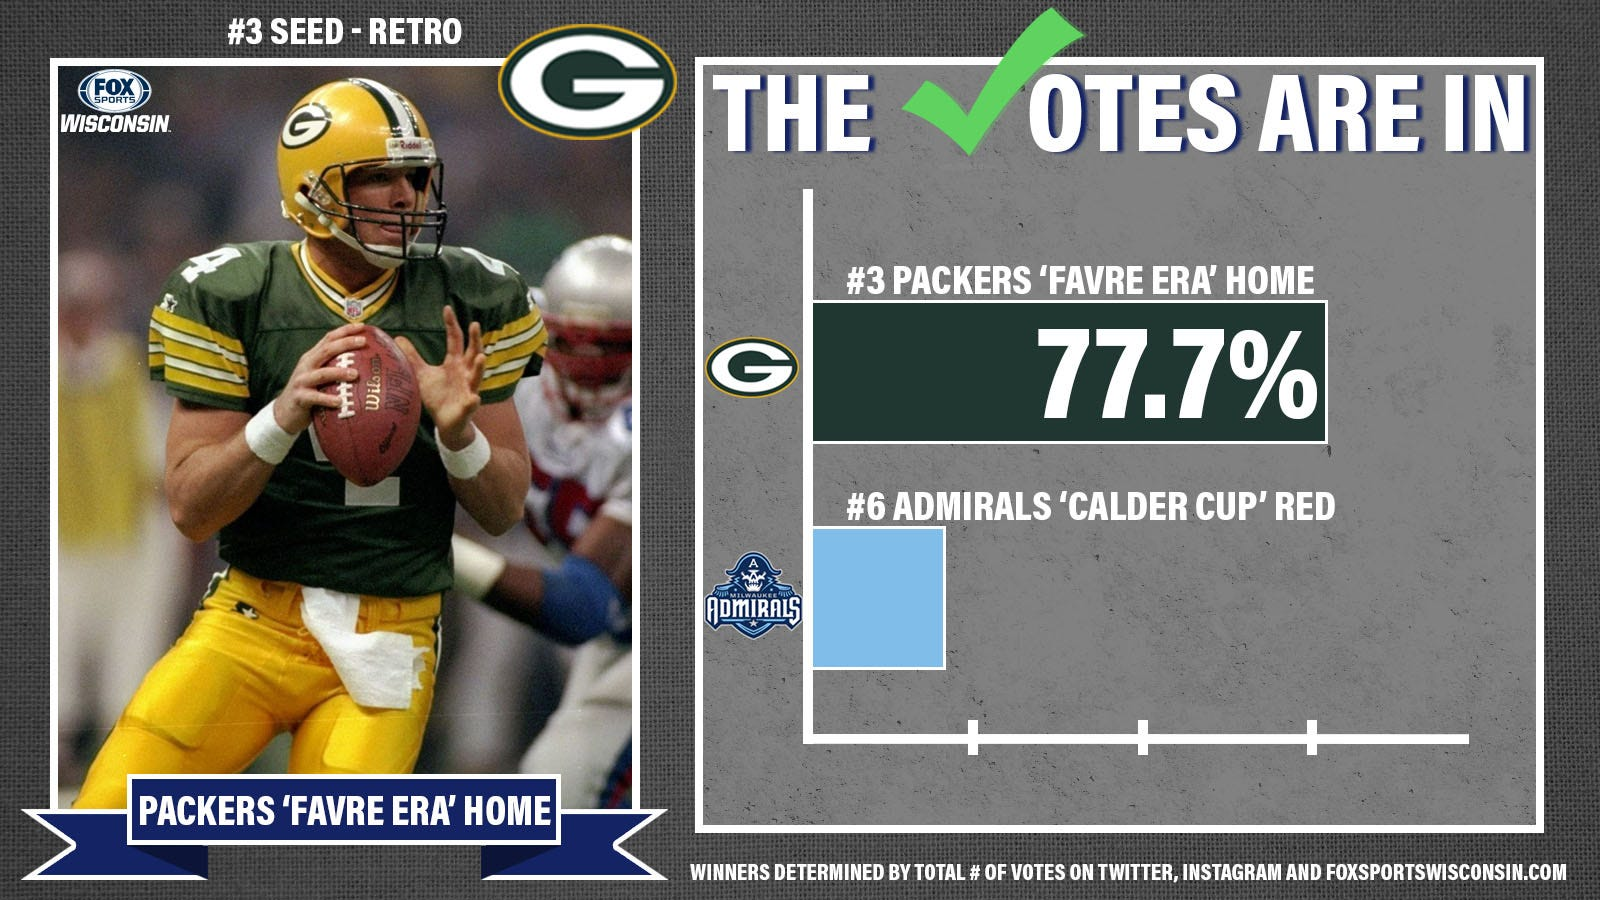 RETRO 3 vs. 6 packers favre era